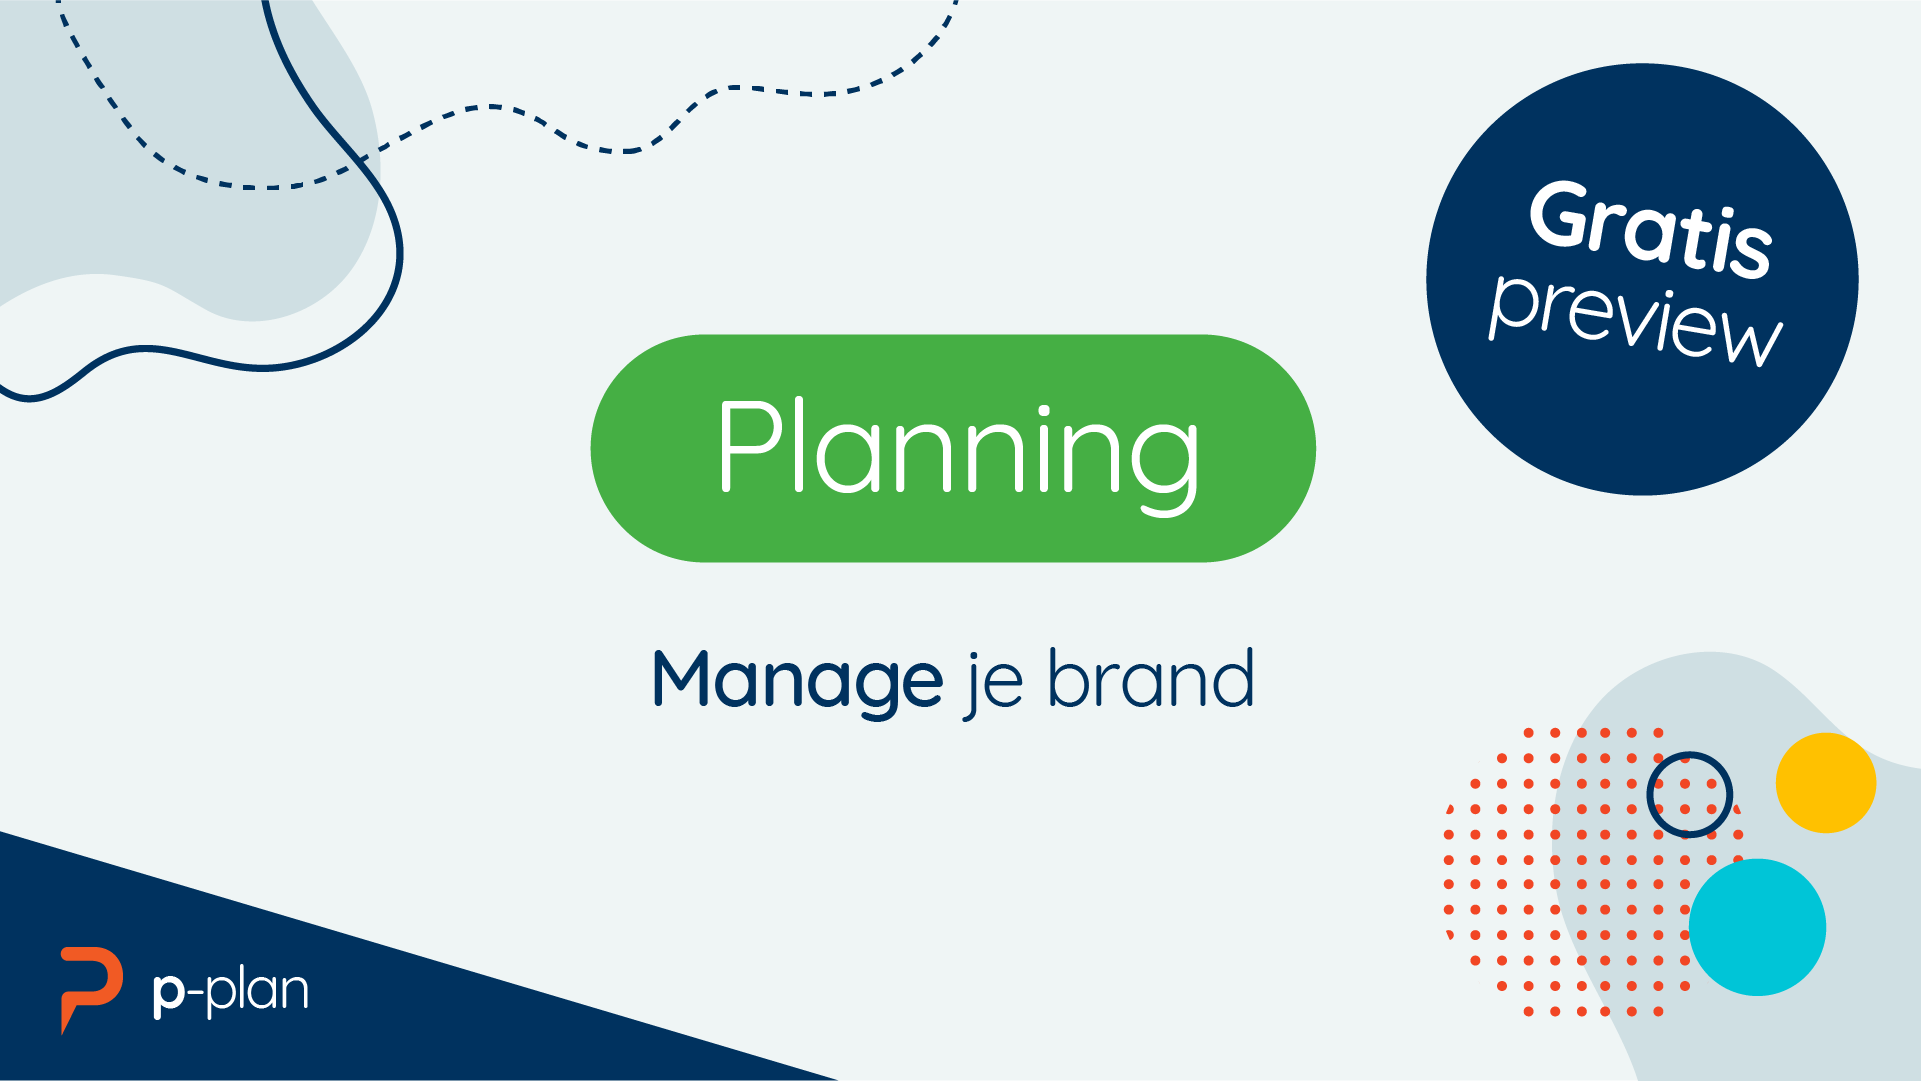 Deze gratis preview les gaat over Planning: hoe je jouw personal brand managed